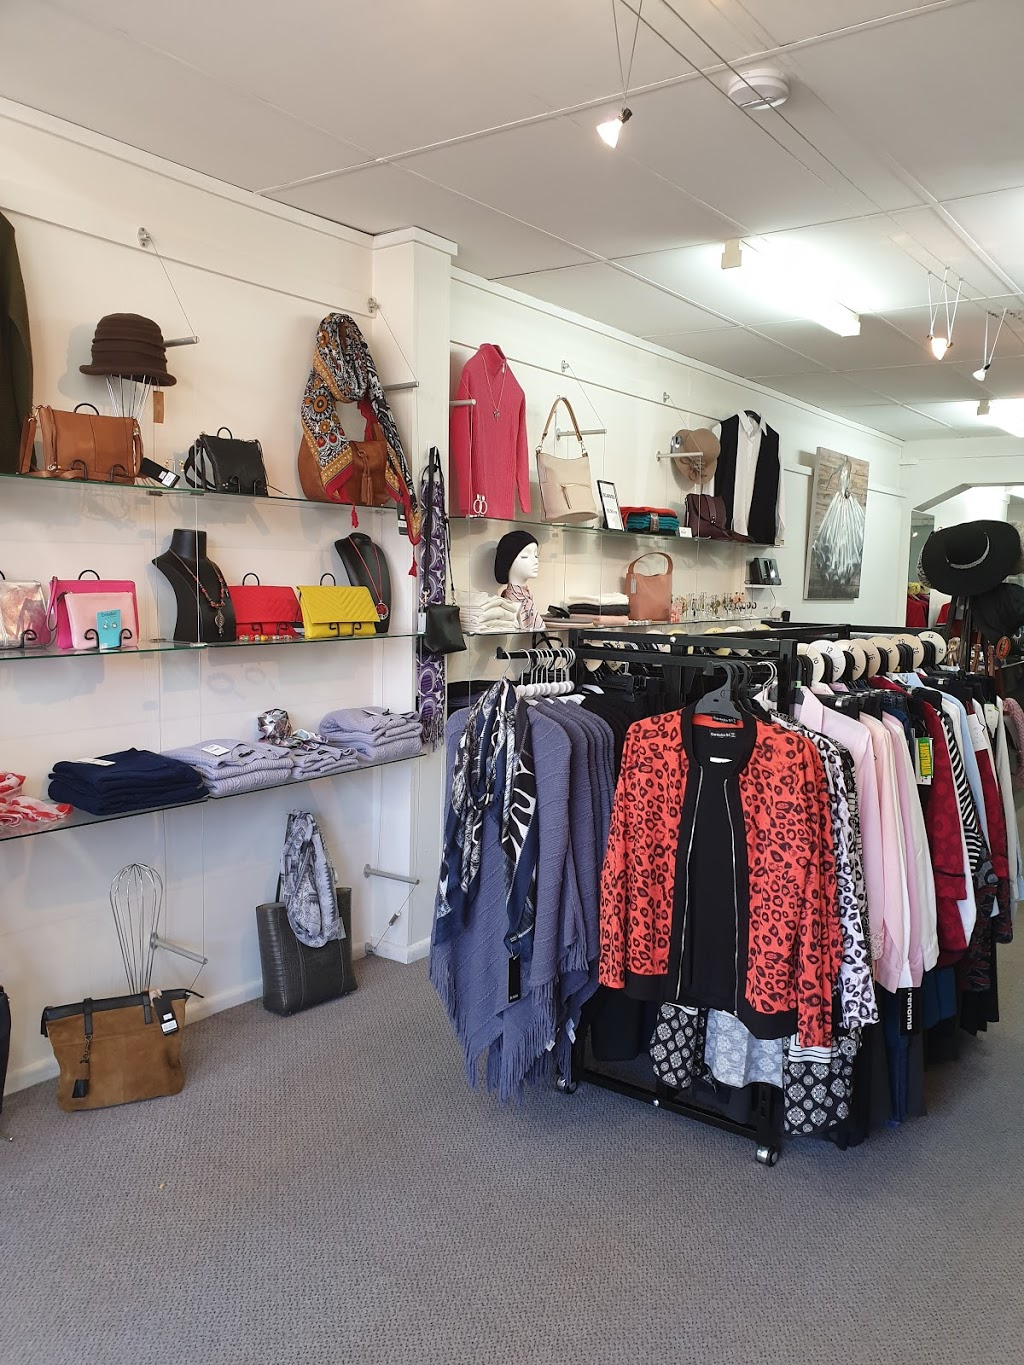 The Loft Fashion House | jewelry store | 70 Wynyard St, Tumut NSW 2720, Australia | 0269471526 OR +61 2 6947 1526